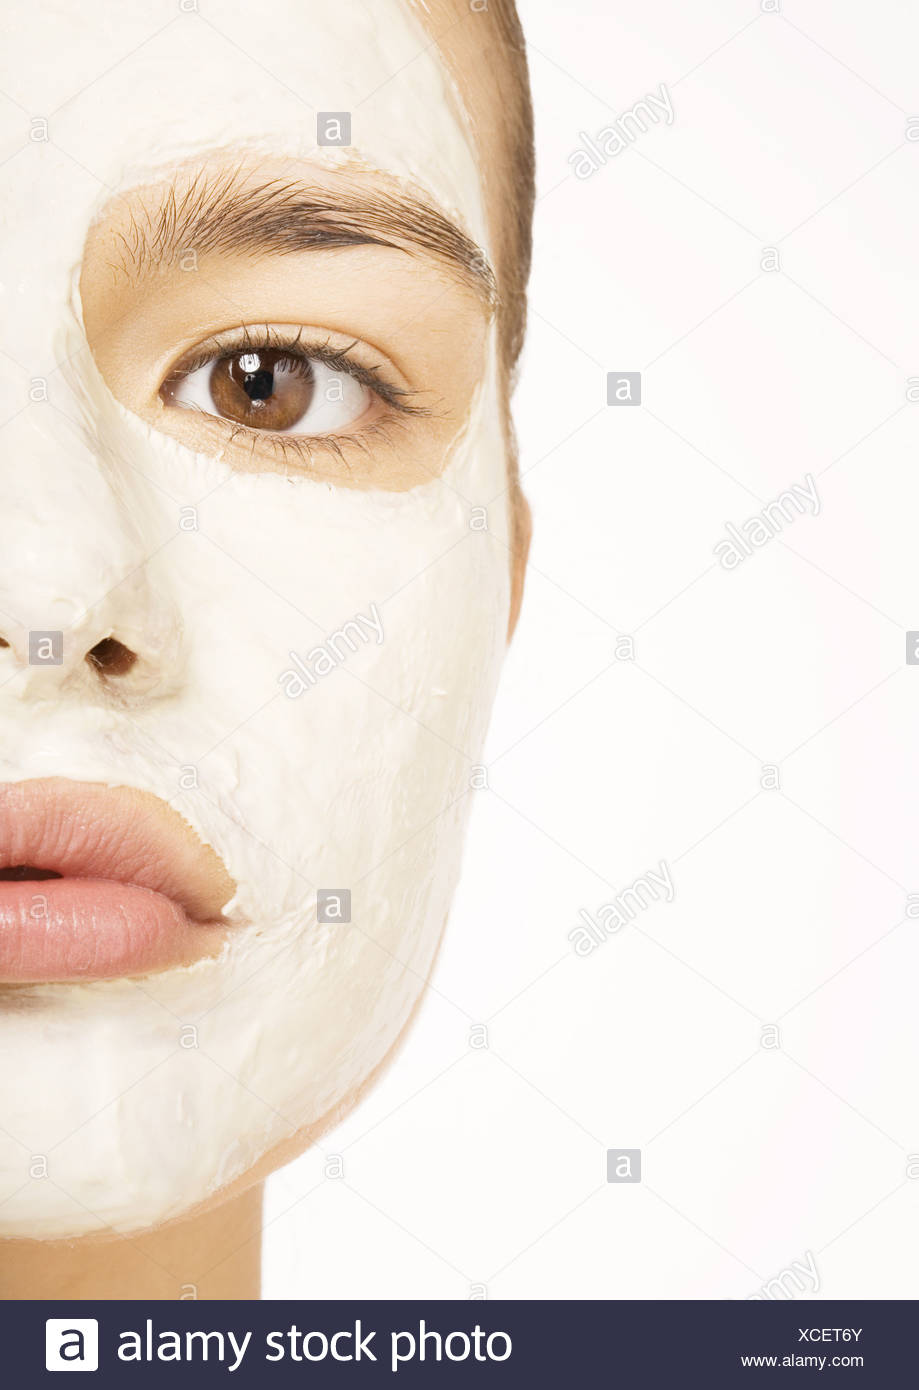 Woman with facial mask, extreme close-up - Stock Image